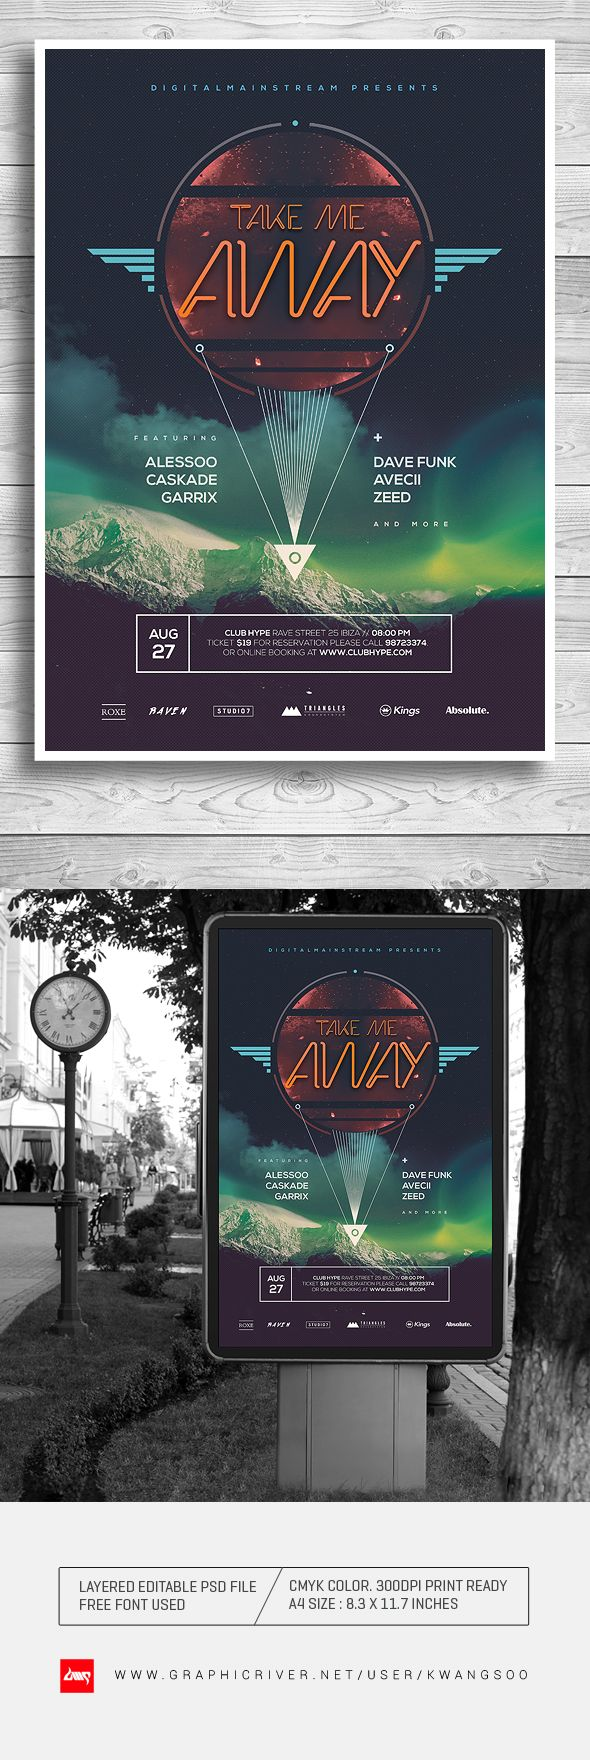 For Sale : http://graphicriver.net/item/take-me-away-electro-music-poster-flyer/8240803?ref=kwangsoo #trance #flyer #poster #techno #dubstep